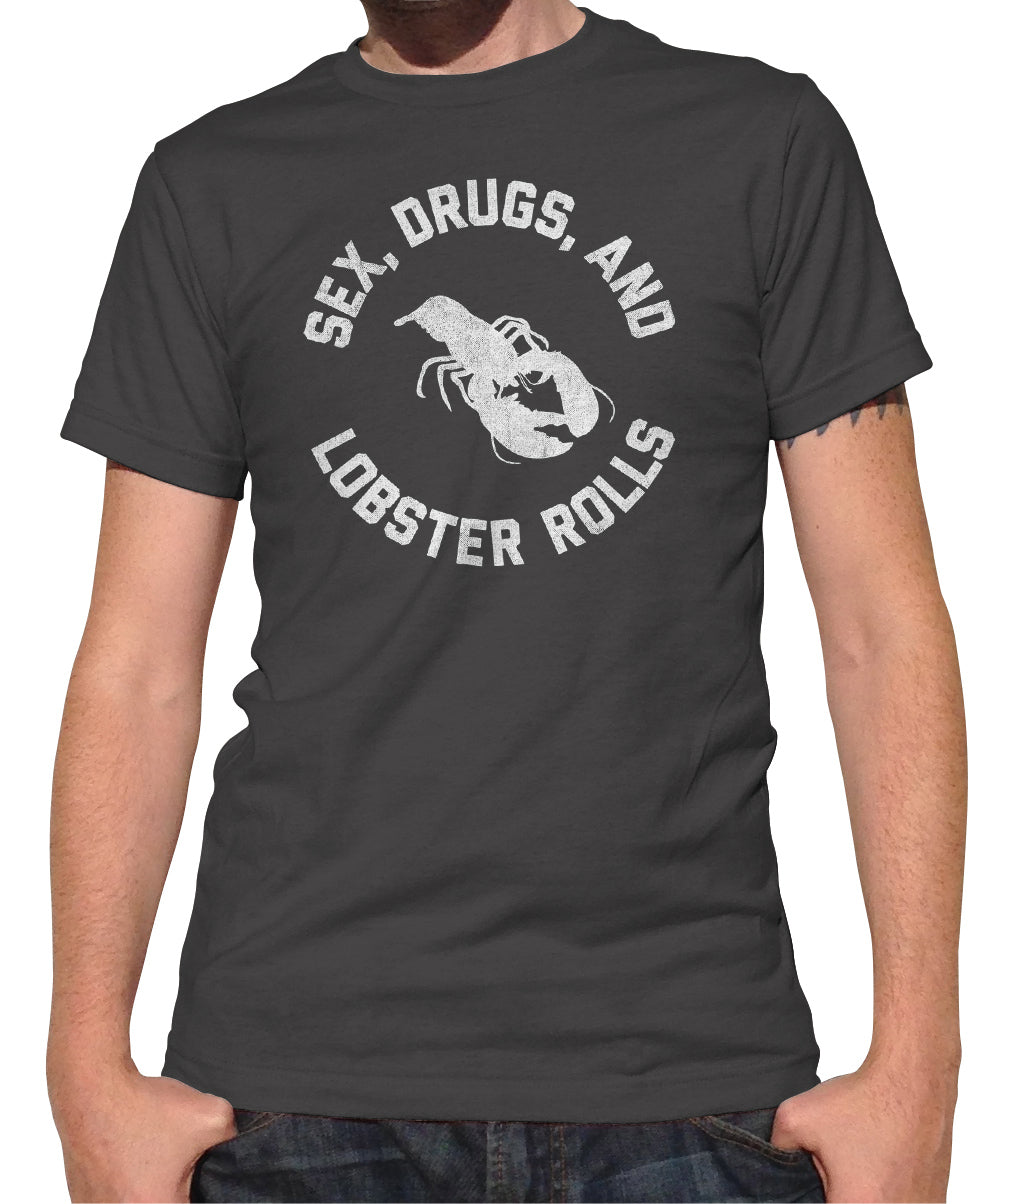 Men's Sex Drugs and Lobster Rolls T-Shirt